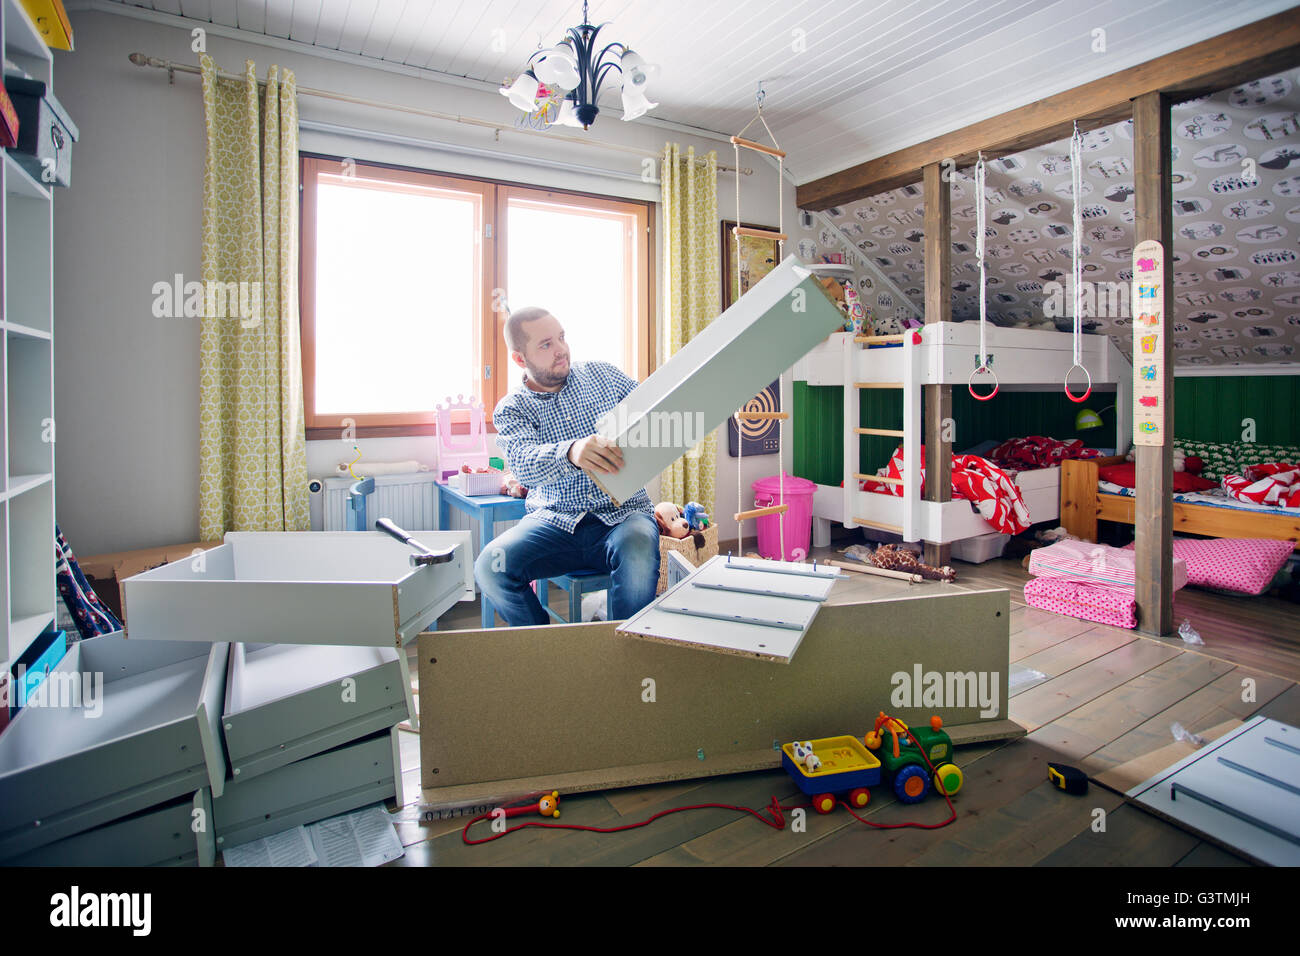 Finland, Man building cabinet in nursery - Stock Image